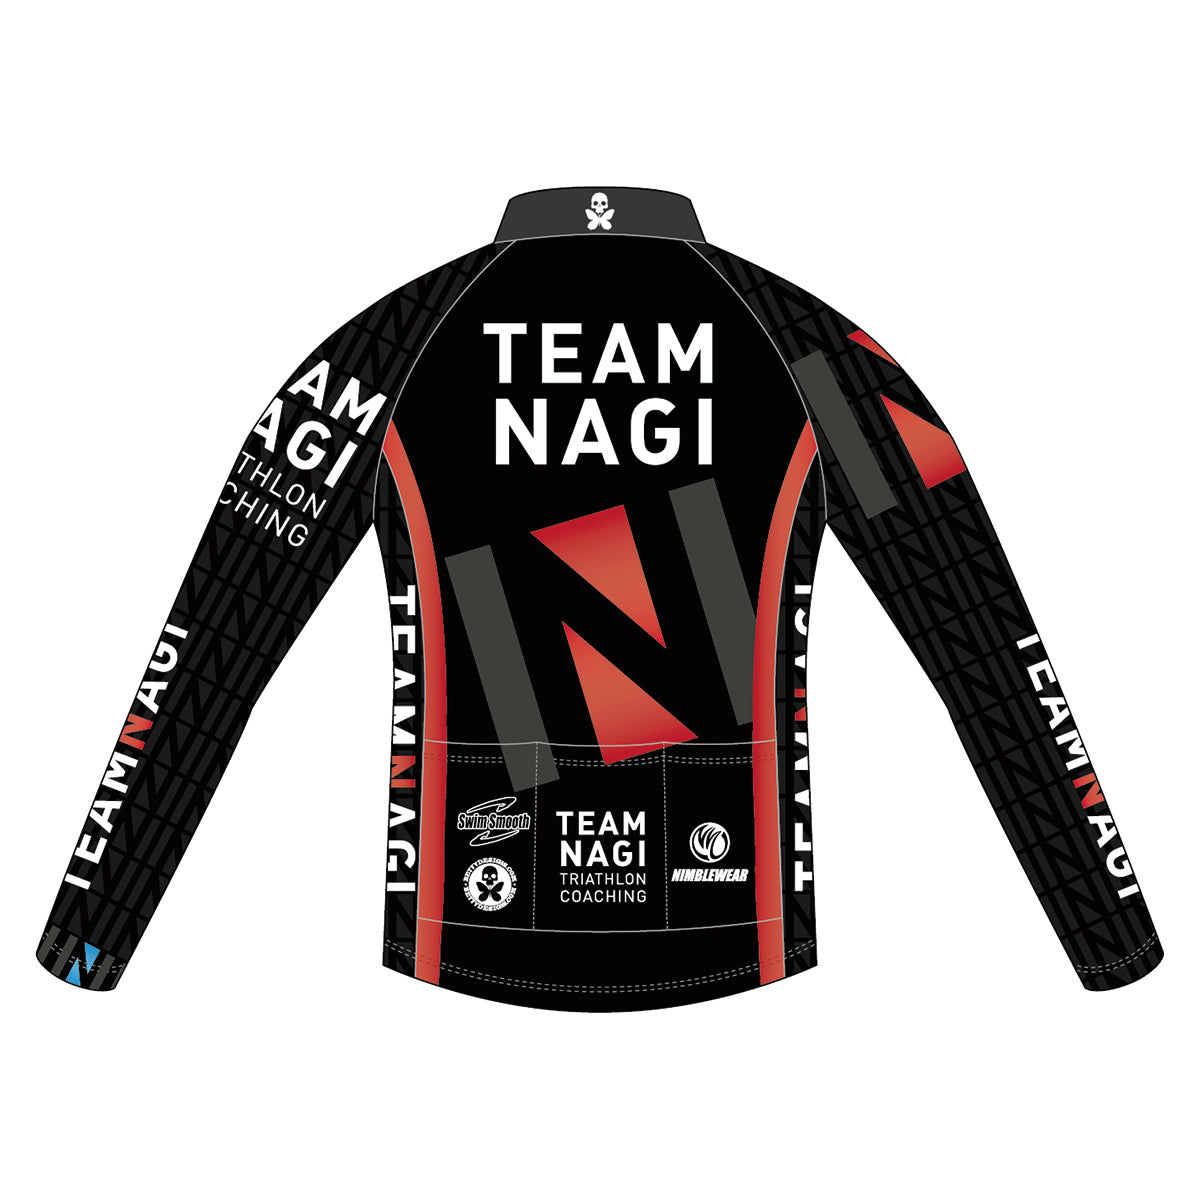 Team Nagi BLACK SILVER Thermal Wind Jacket